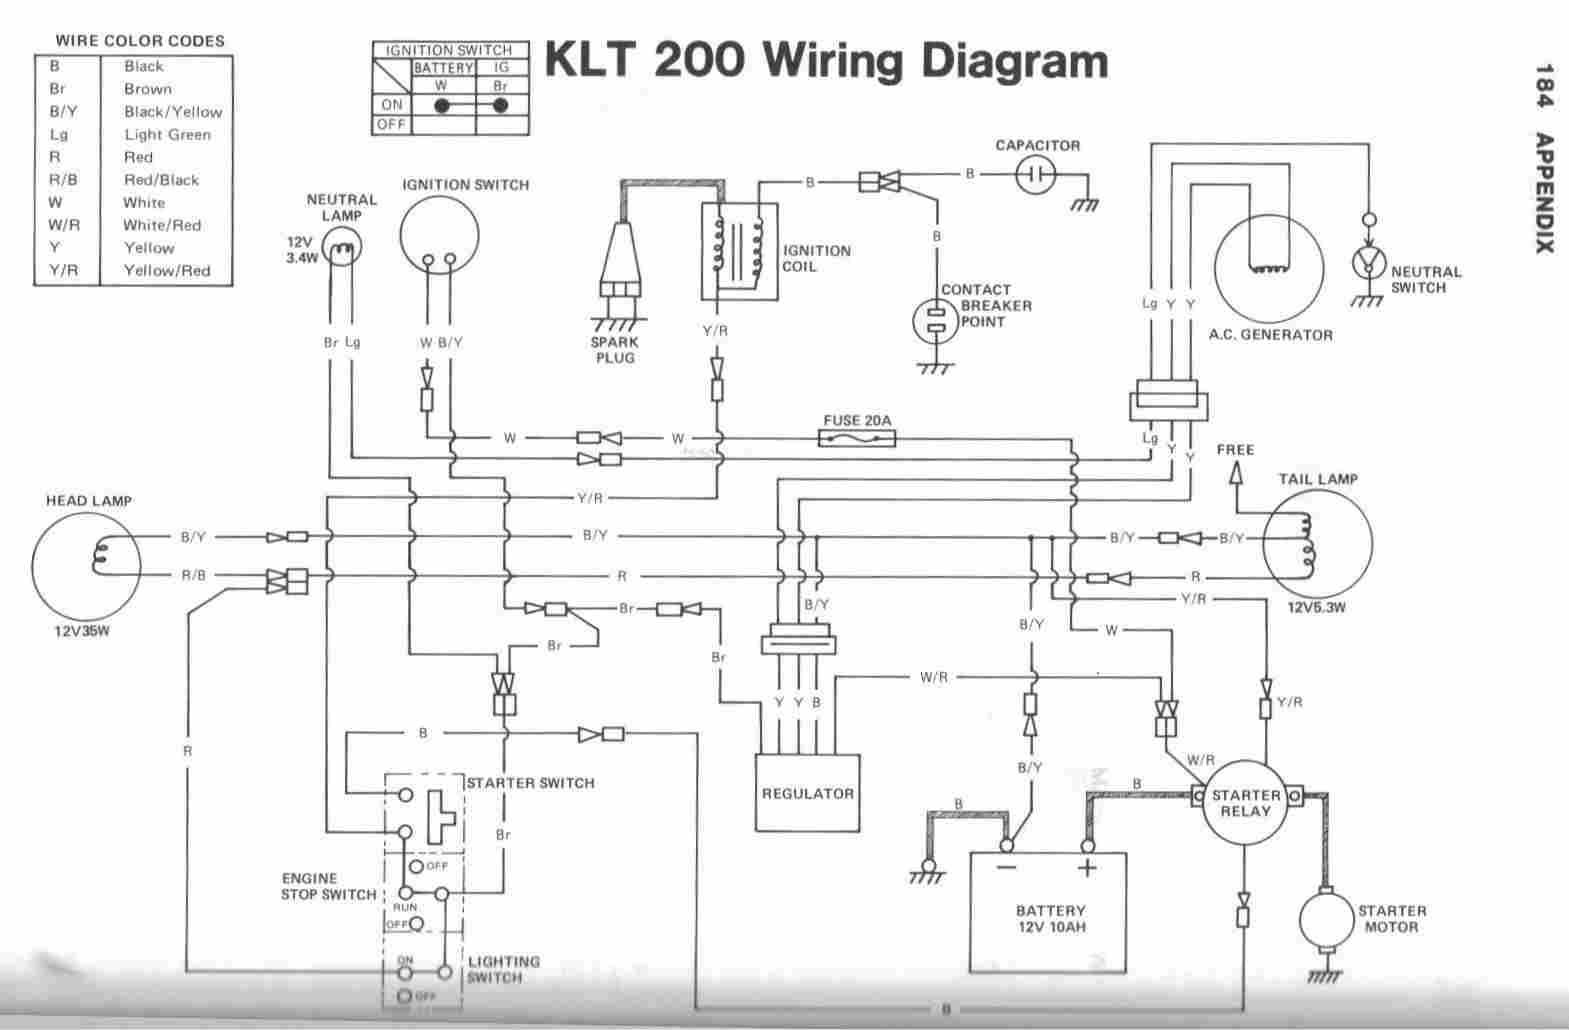 2869034594ce054a636782e5c44b61b4 residential electrical wiring diagrams pdf easy routing cool electrical wiring diagrams at alyssarenee.co